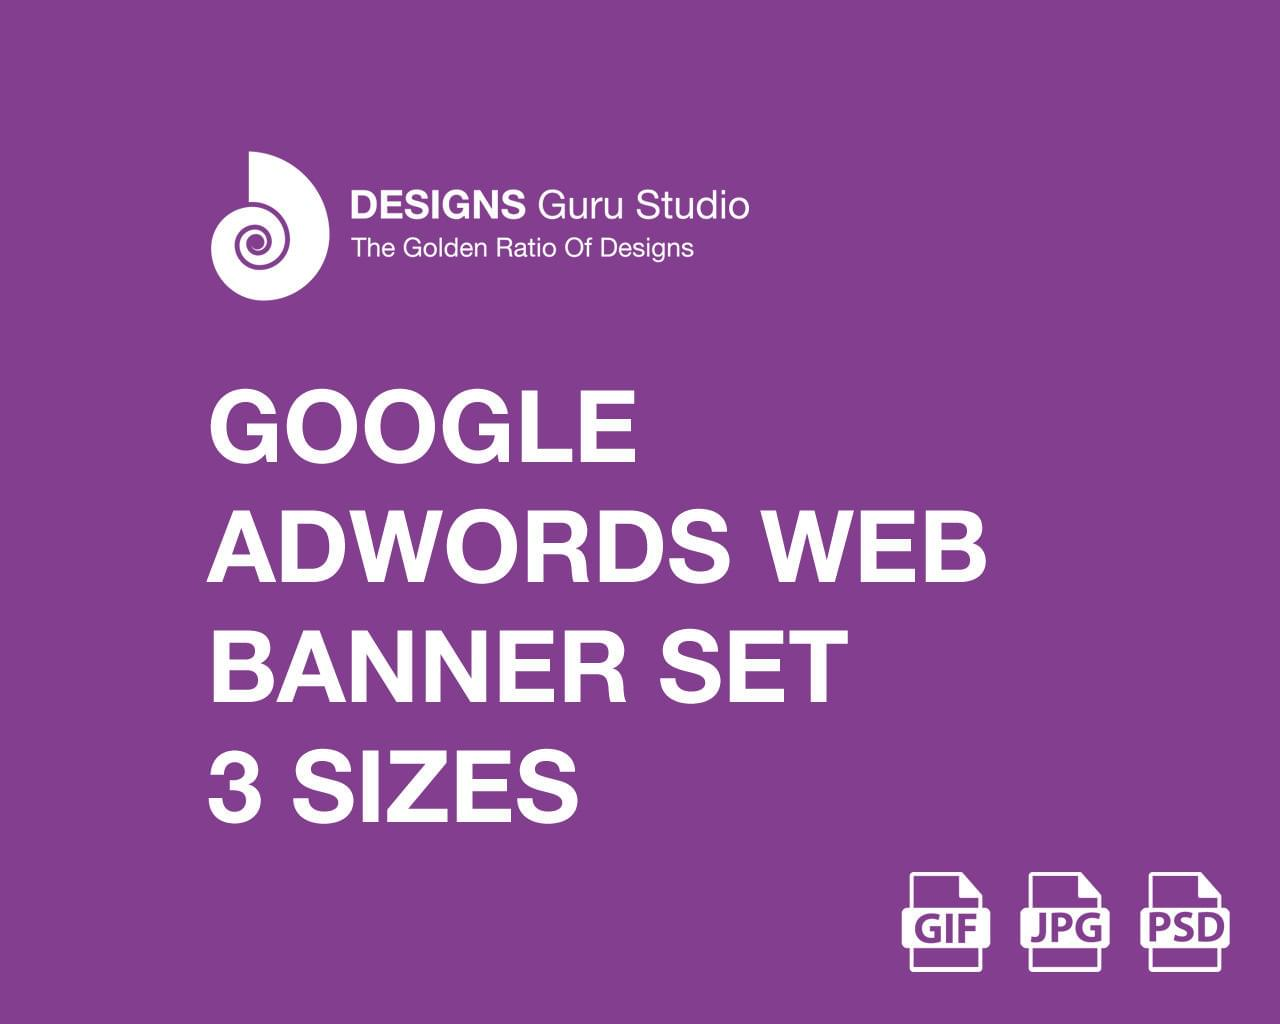 Google AdWords Web Banner Set - 3 Sizes (GIF/JPG) by designsgurustudio - 115379